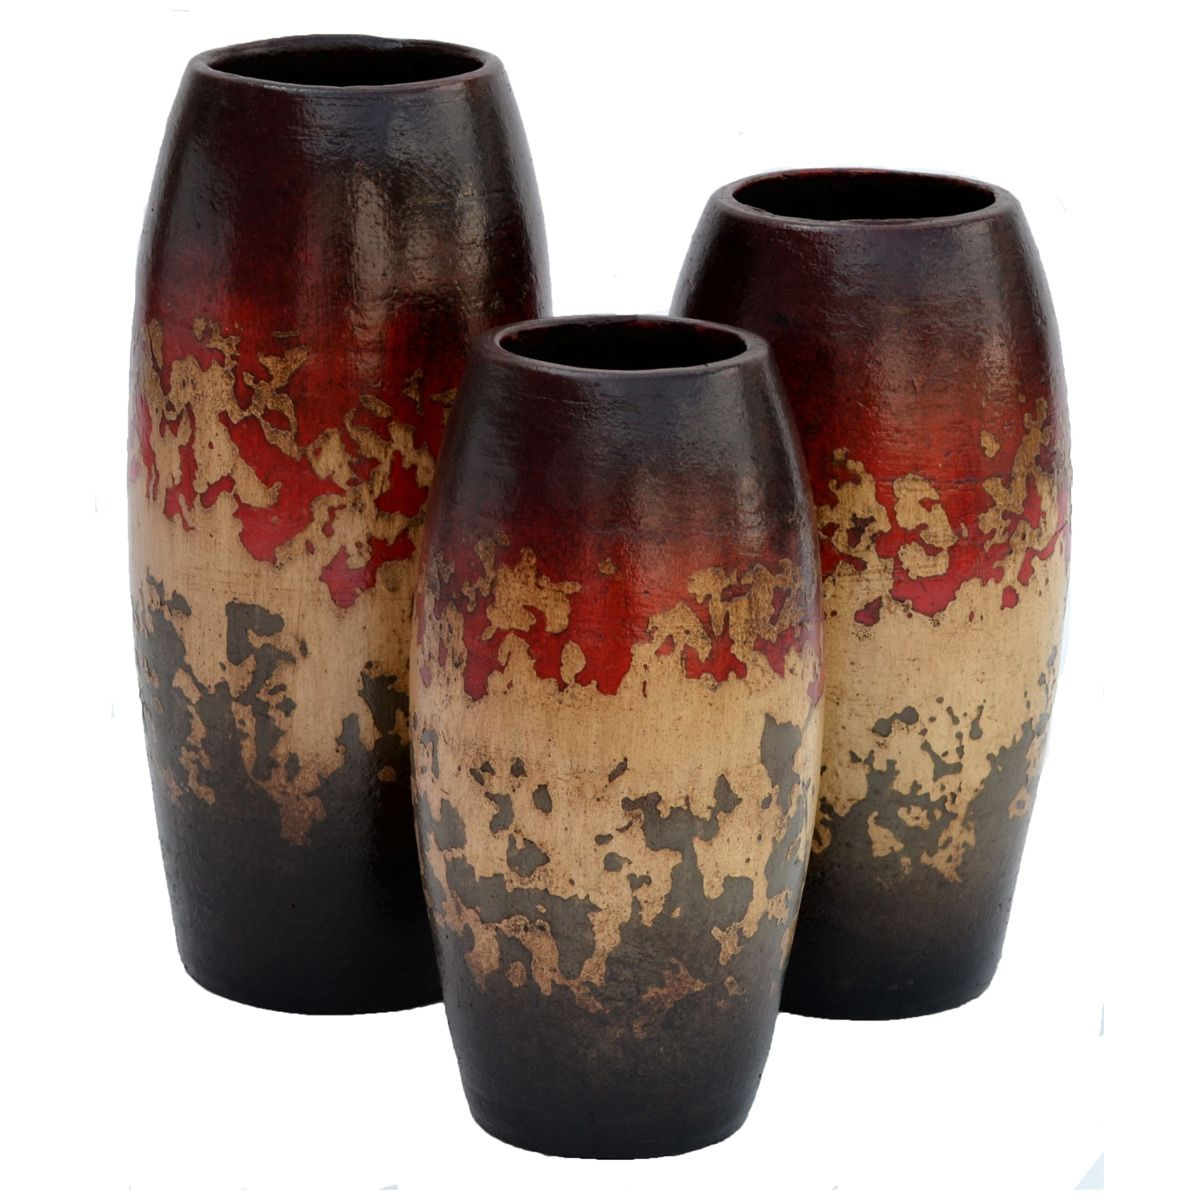 Camino Red Vases - Set of 3